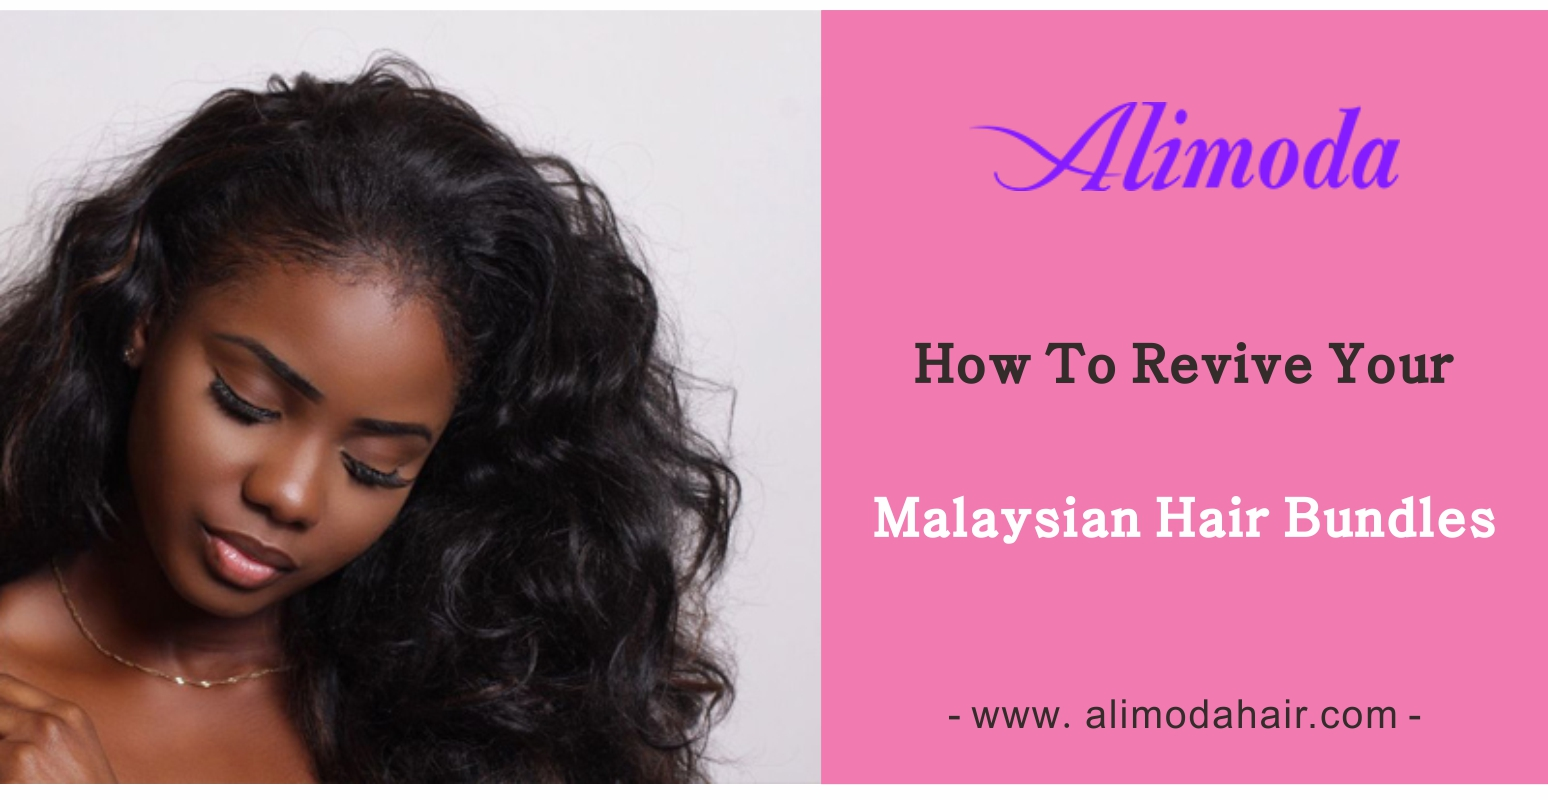 How to revive your Malaysian hair bundles